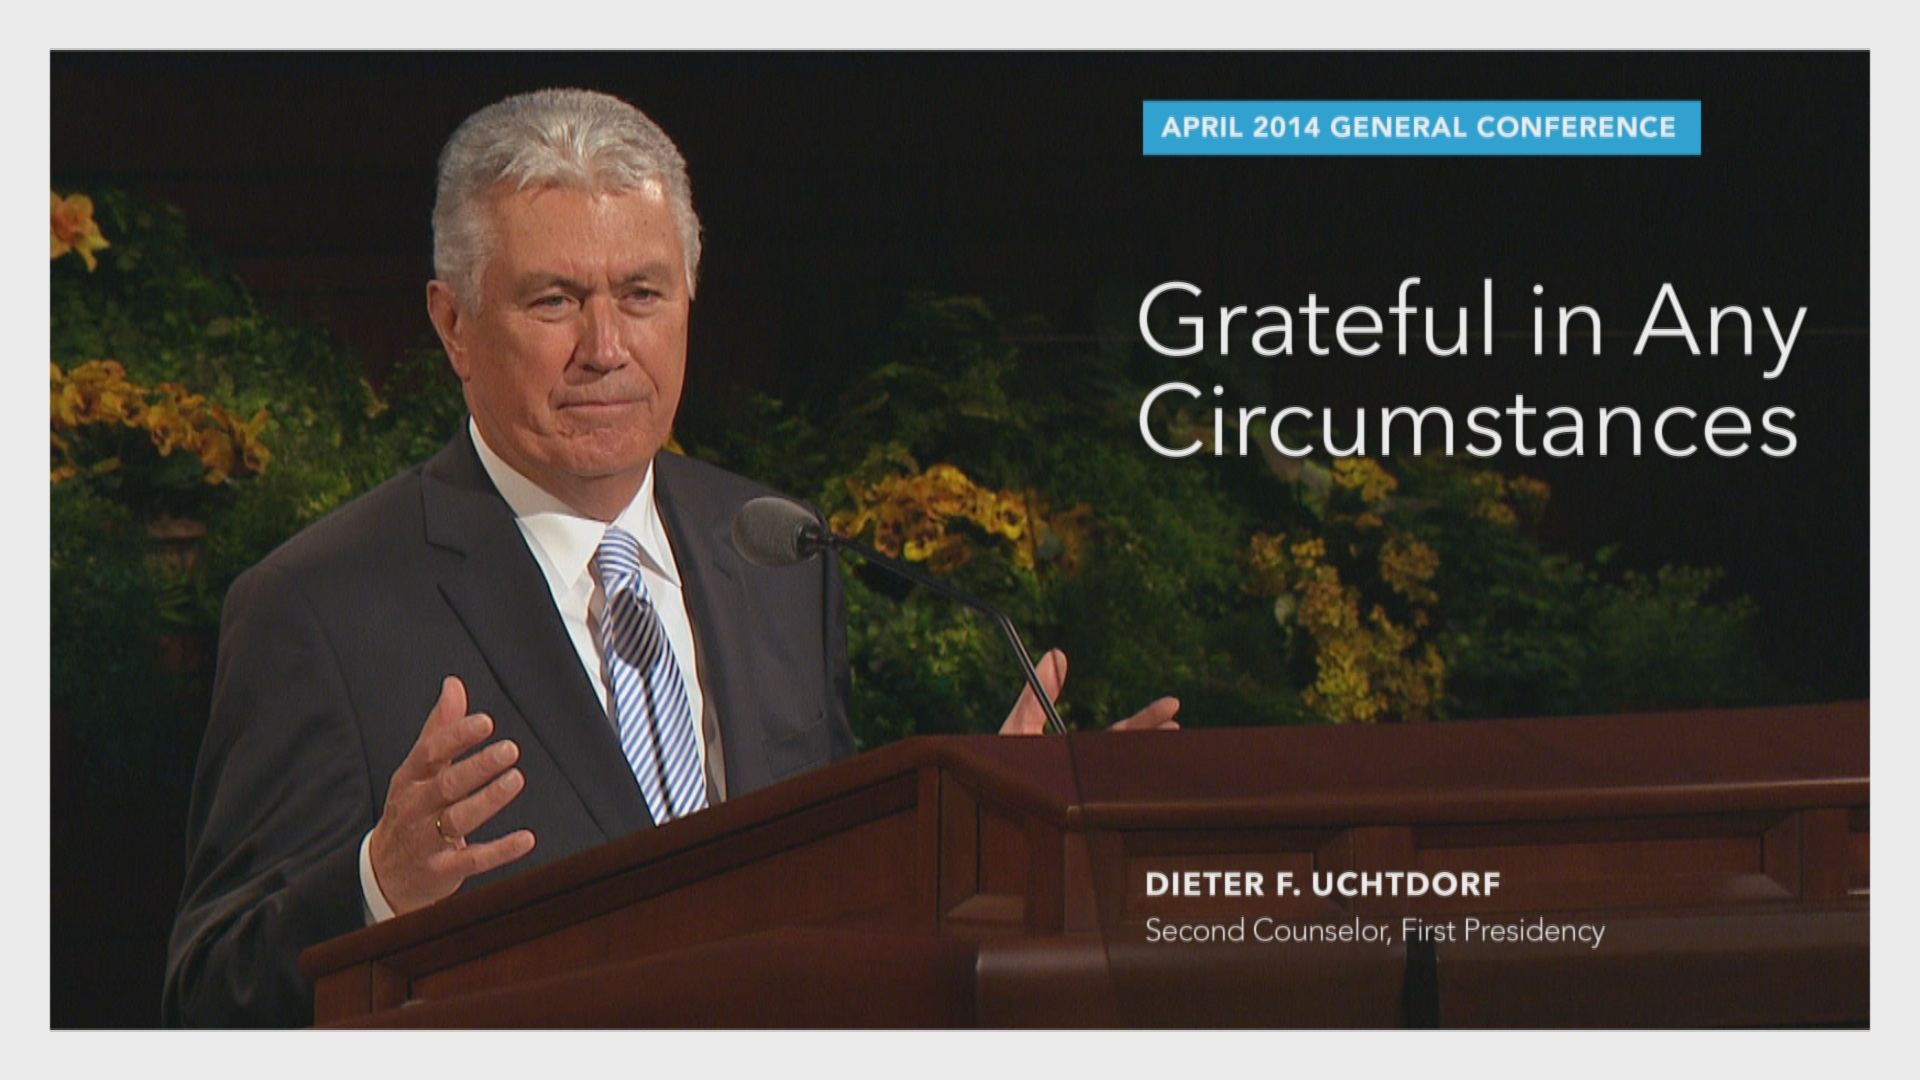 president uchtdorf general womens meeting 2014 General conference thoughts i hope you all had a chance to watch the general conference of the ever-so-popular two word sermon by president dieter f uchtdorf:.